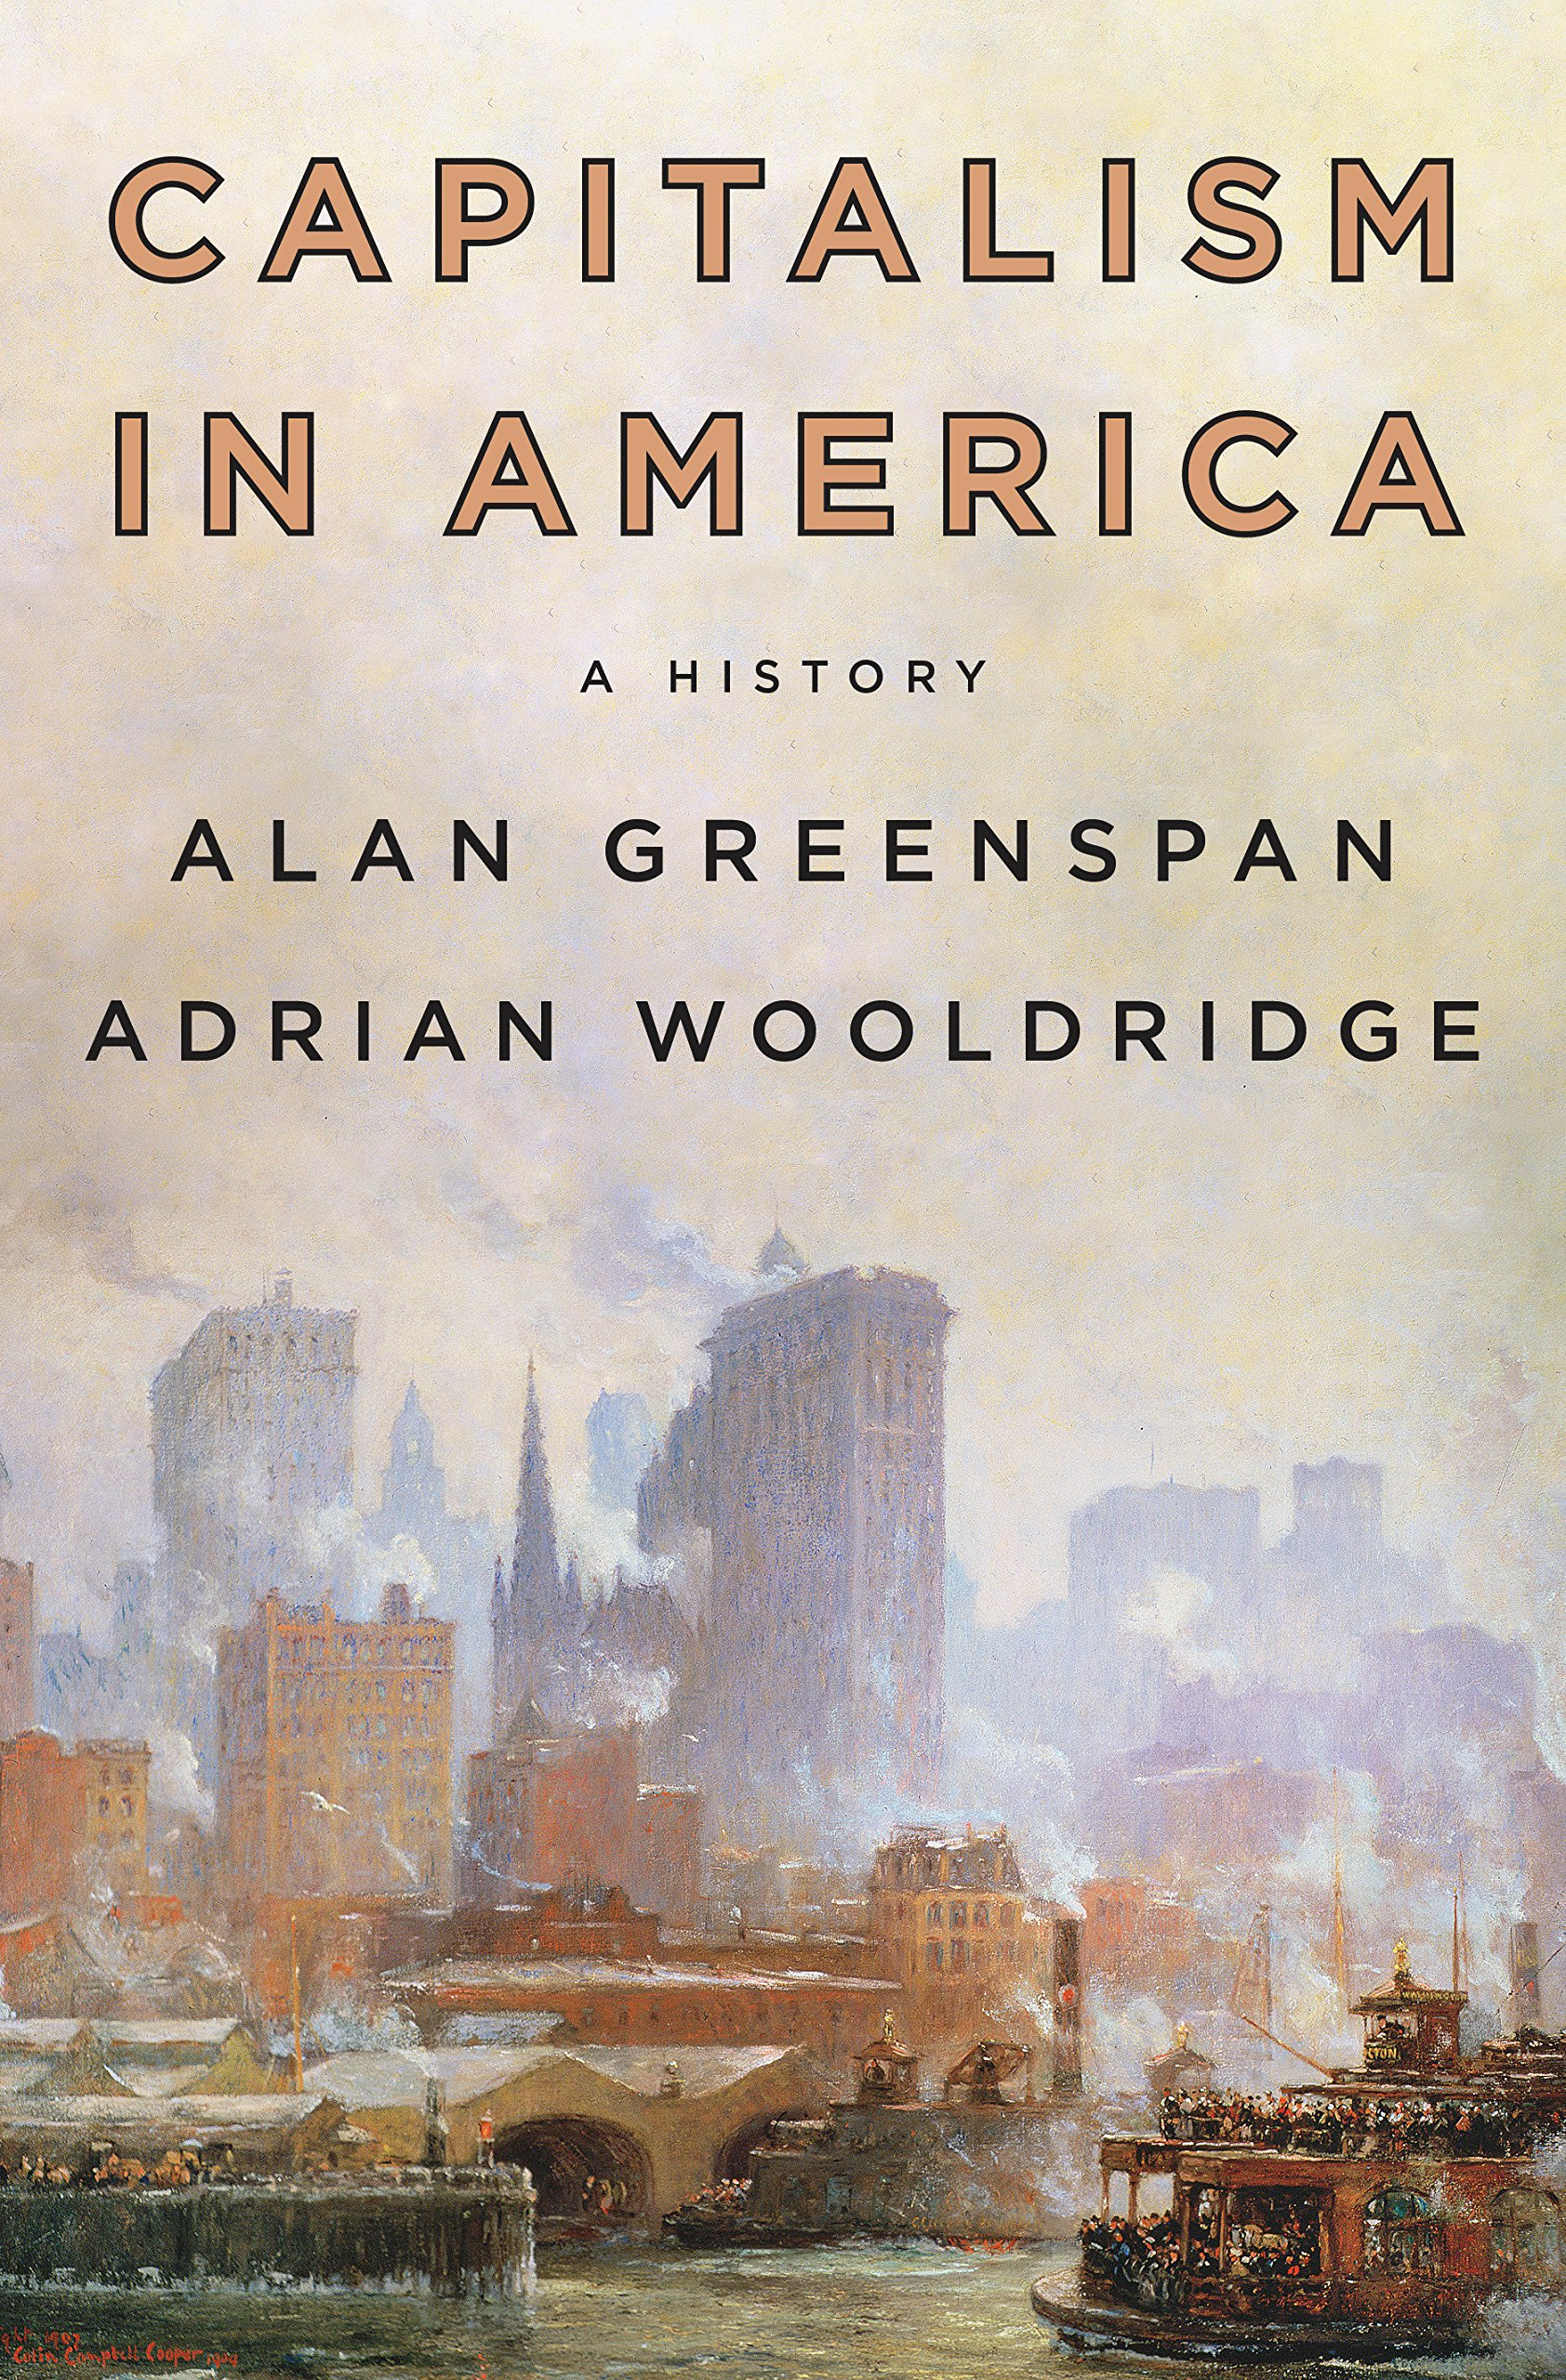 Capitalism in America: A History by Alan Greenspan and Adrian Wooldridge, Penguin Press, 2018